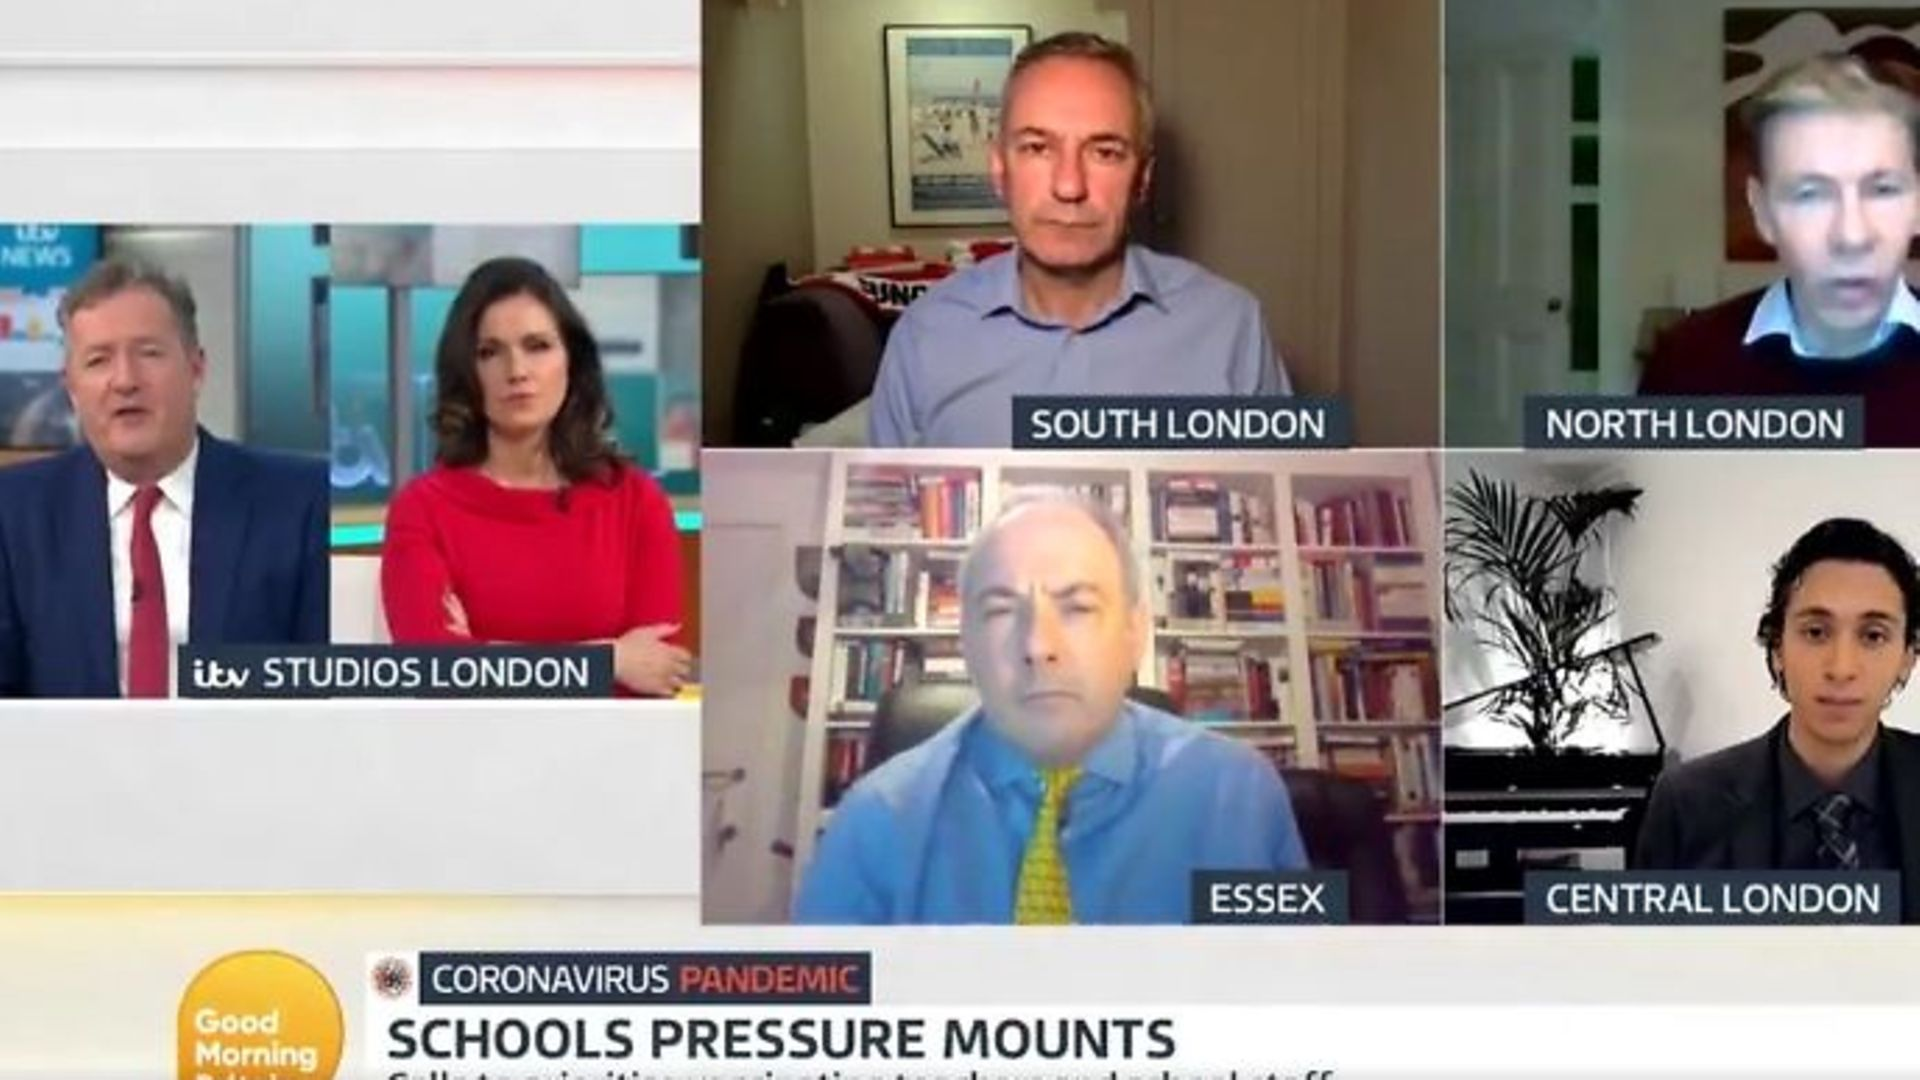 Piers Morgan (far left) and Susanna Reid host a panel to discuss the government's coronavirus measures on Good Morning Britain - Credit: Twitter, GMB